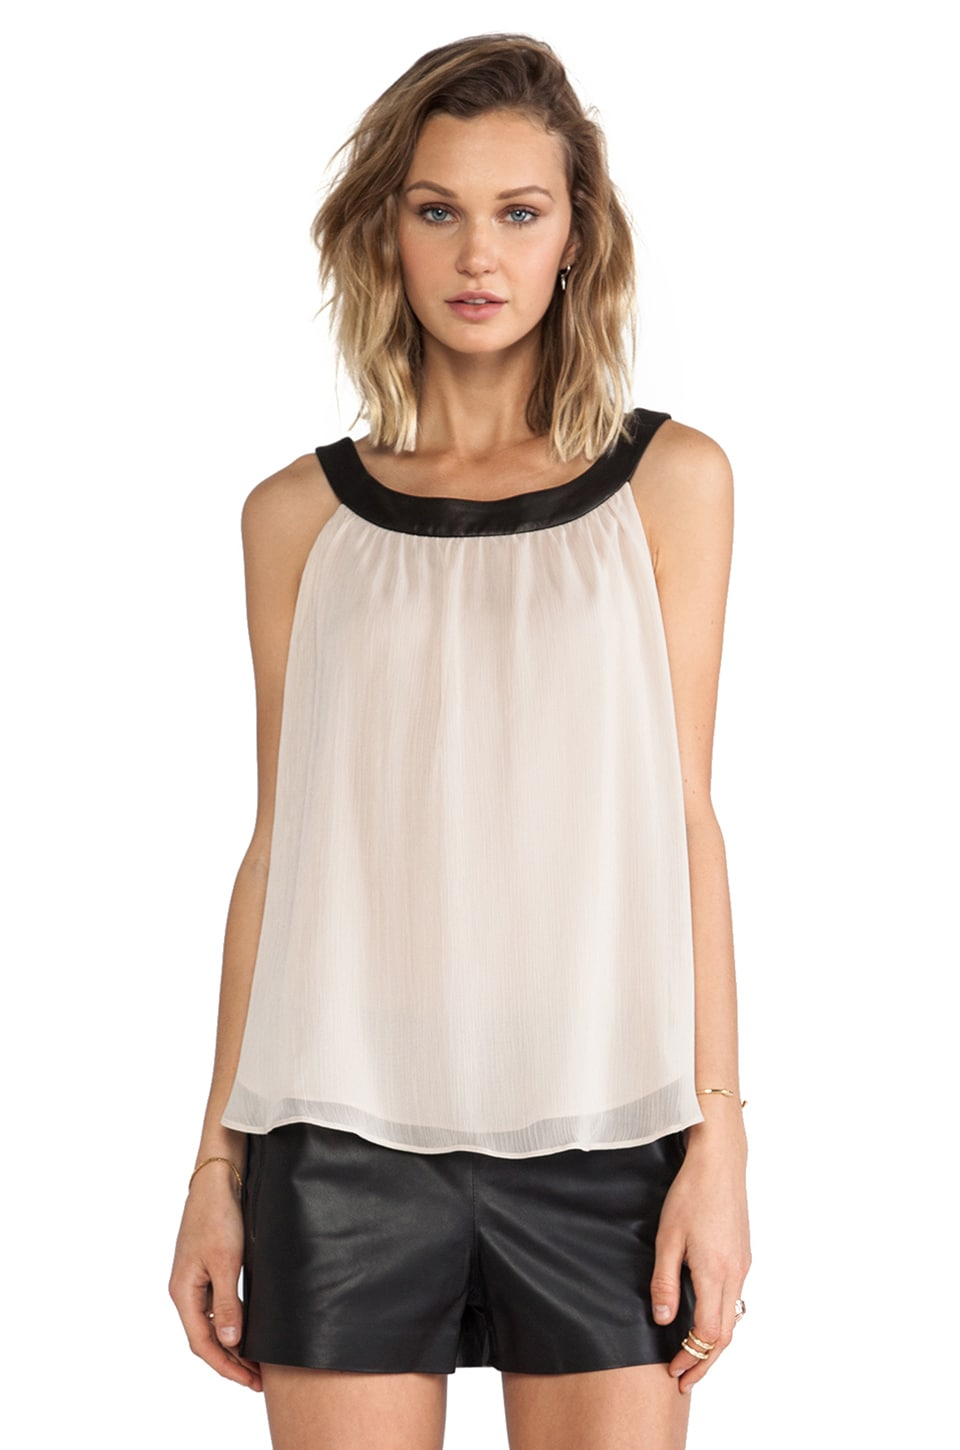 Alice + Olivia Antonia Leather Neckband Tank in Nude